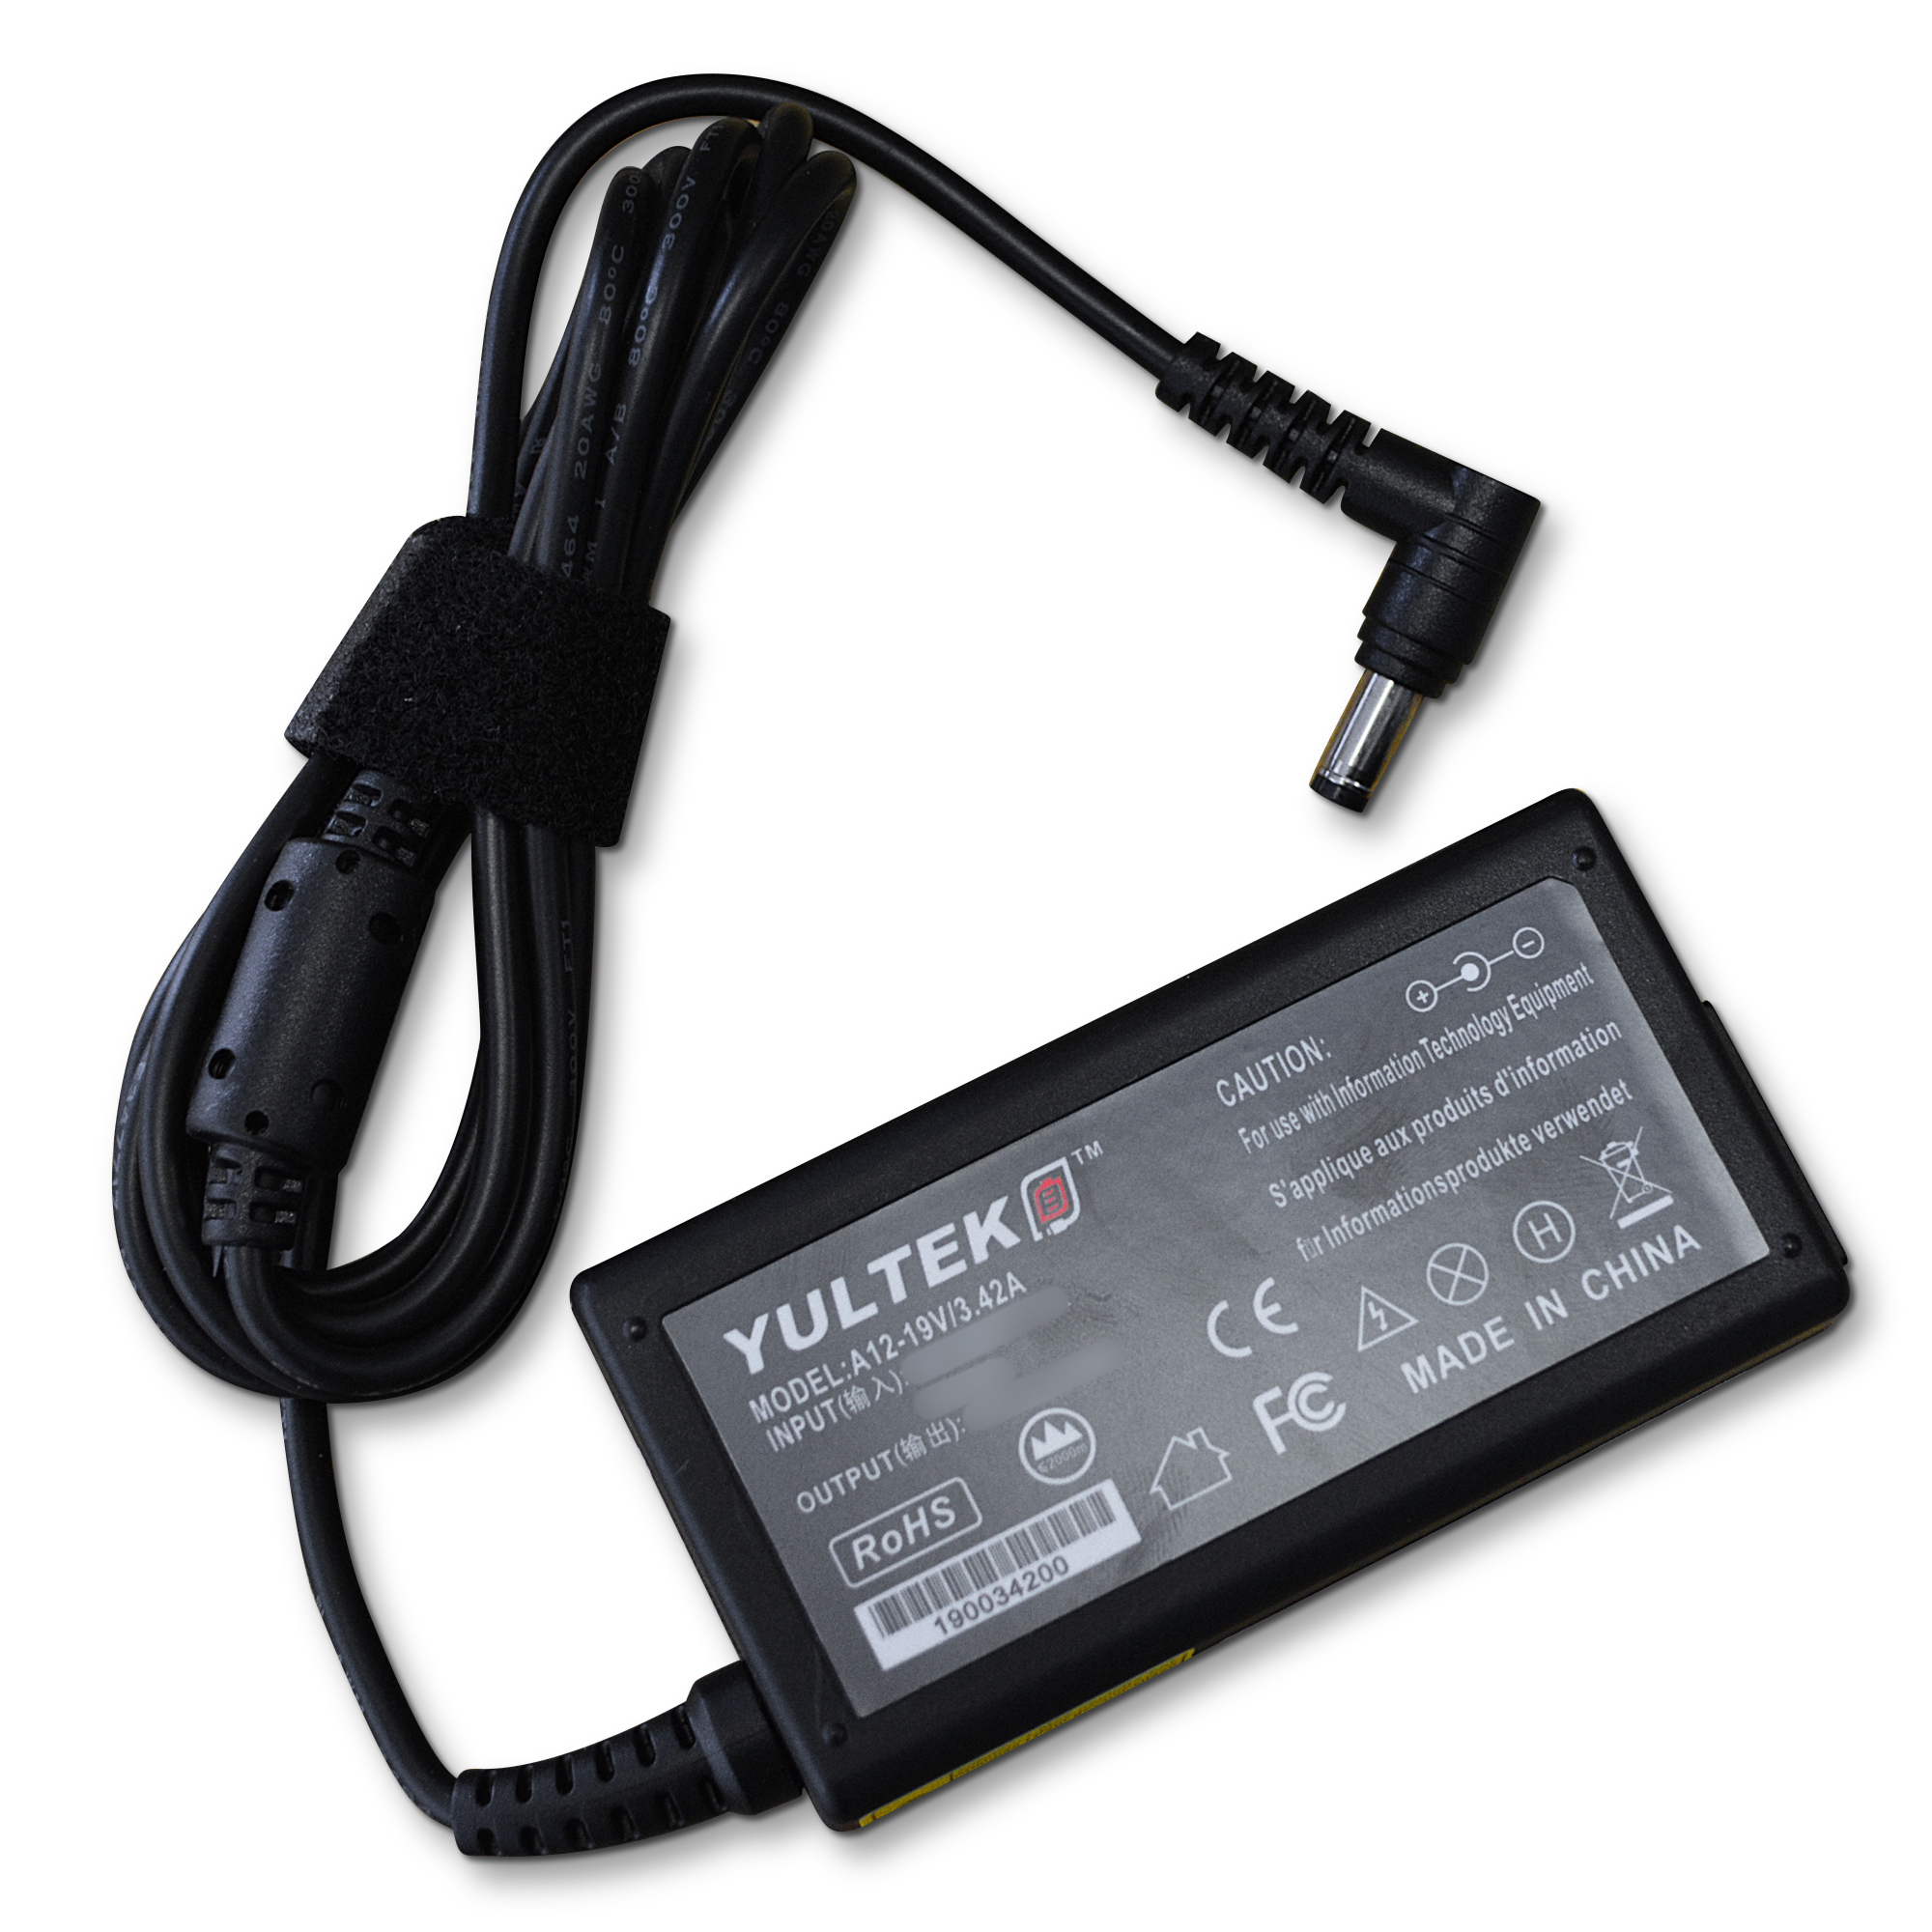 Fujitsu-Siemens Part Number WTS:25.10203.001 Laptop Charger